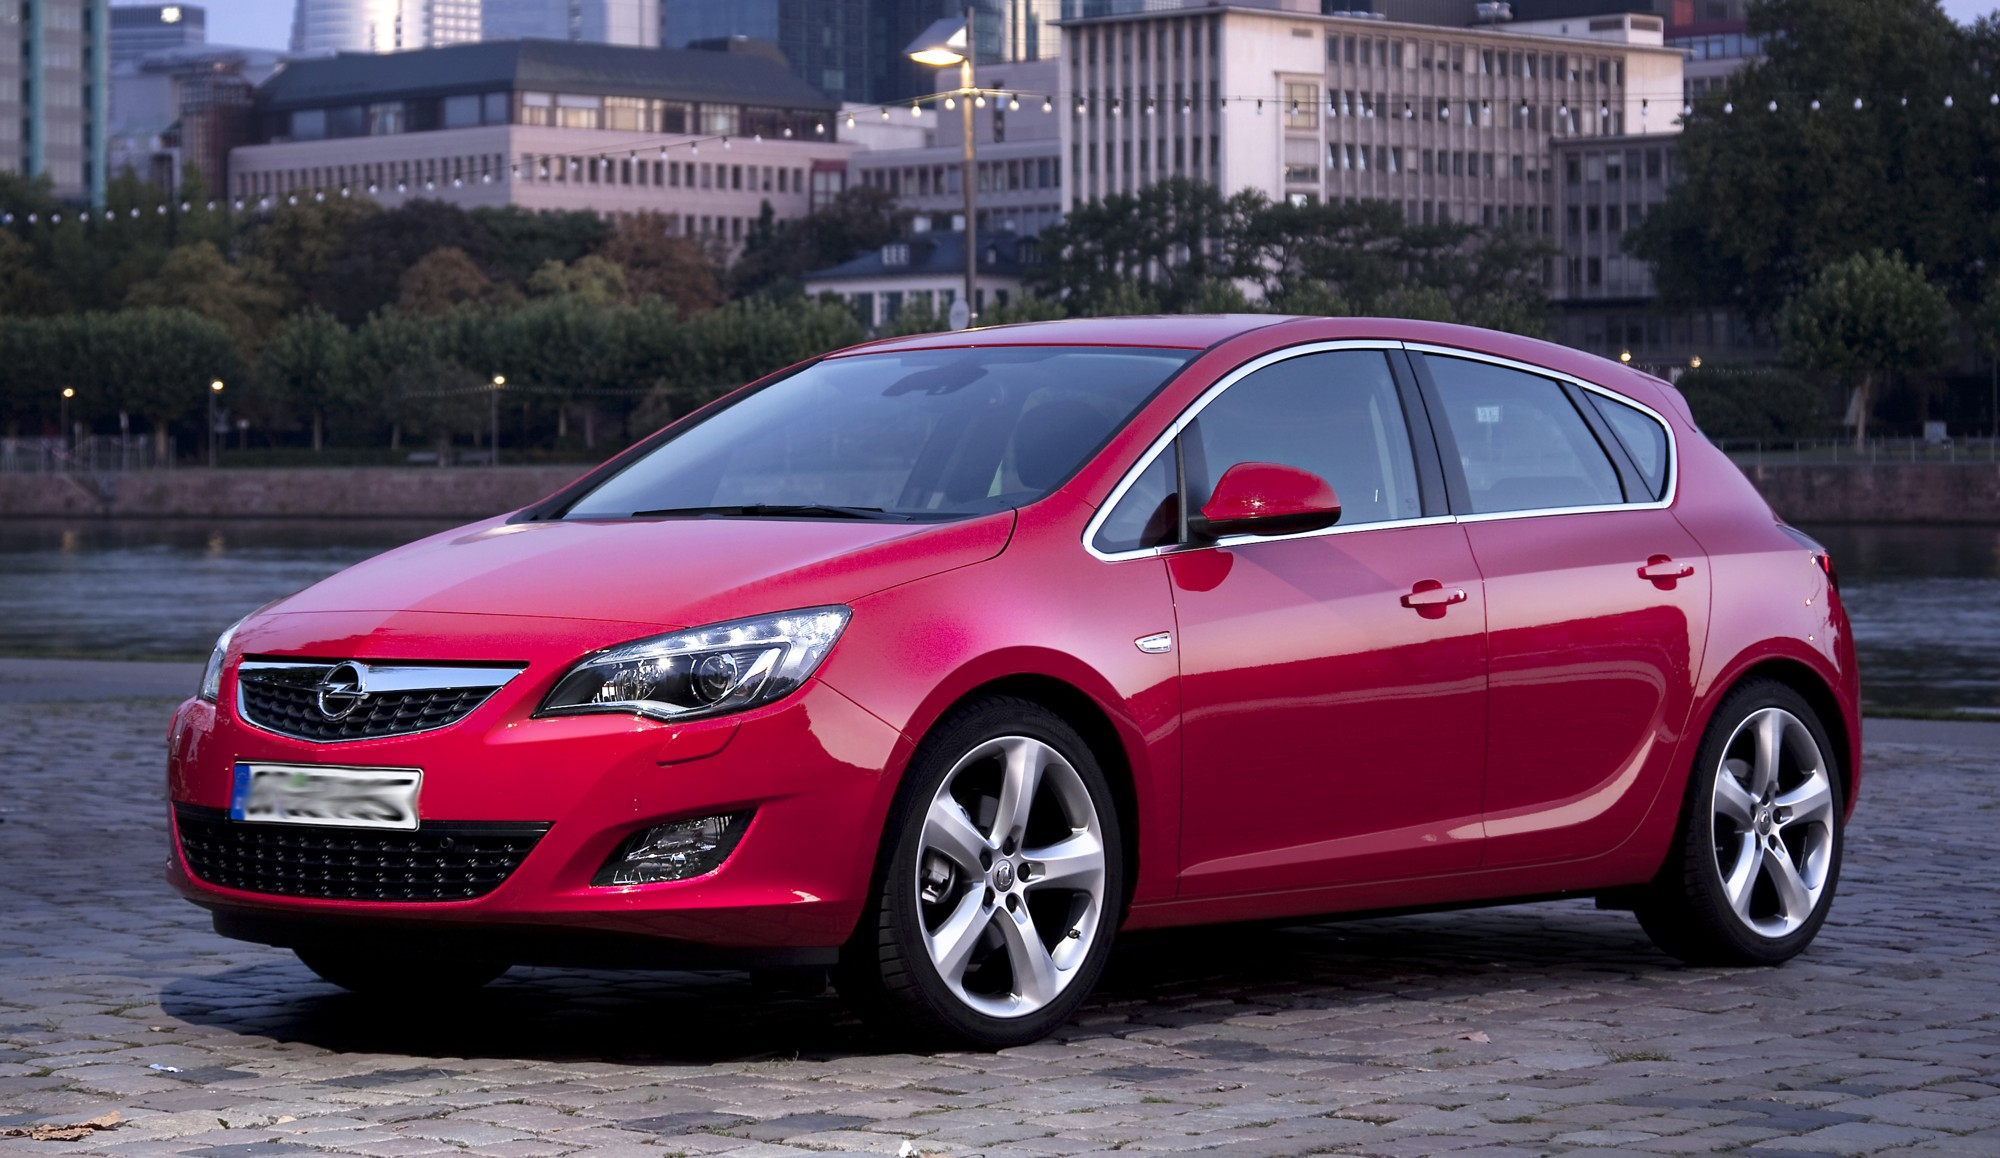 Opel Astra red Wallpapers Download